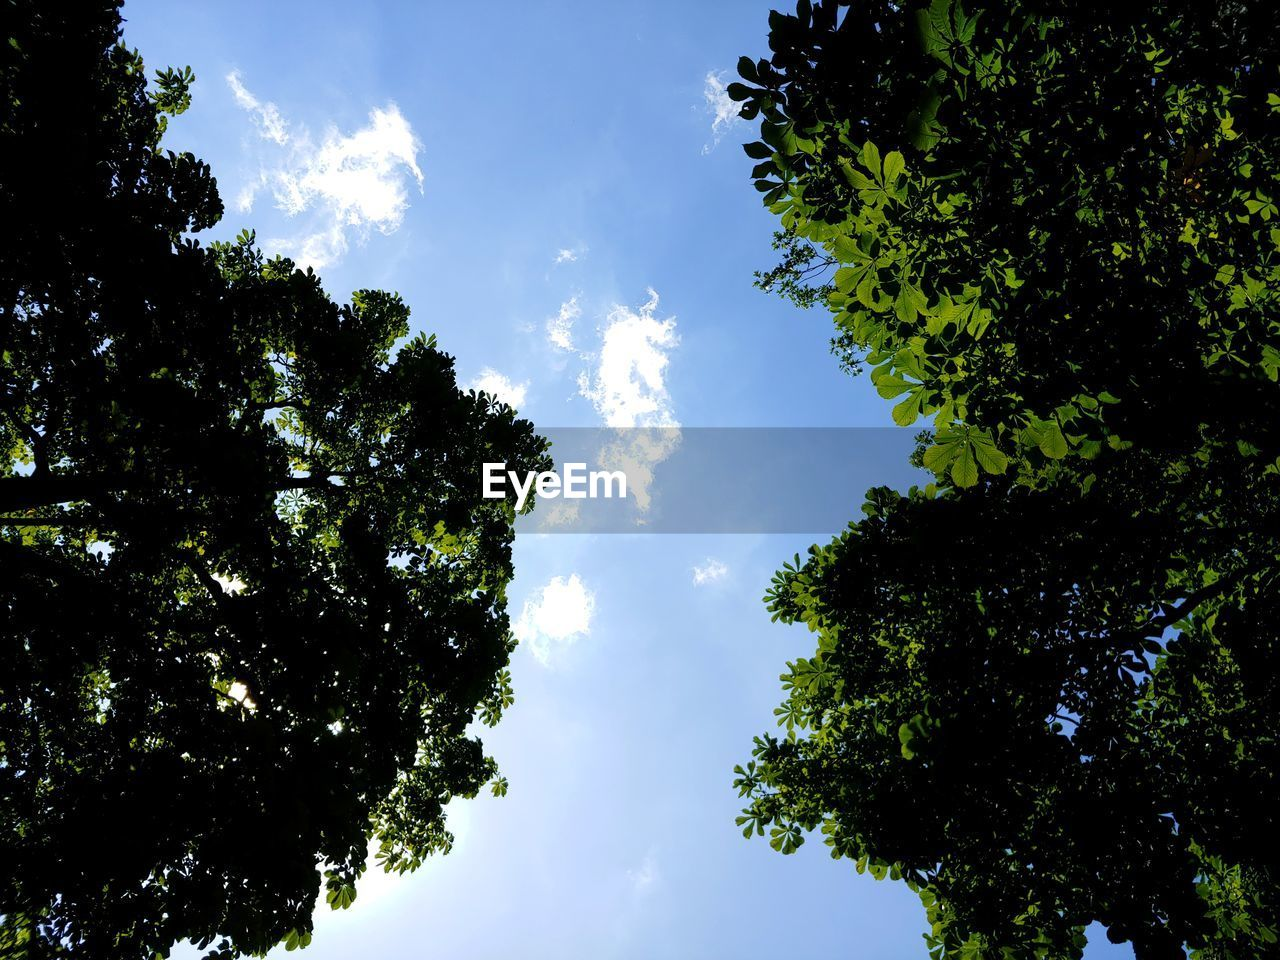 tree, sky, plant, beauty in nature, low angle view, growth, tranquility, nature, no people, day, tranquil scene, cloud - sky, outdoors, scenics - nature, sunlight, green color, blue, idyllic, silhouette, sunny, tree canopy